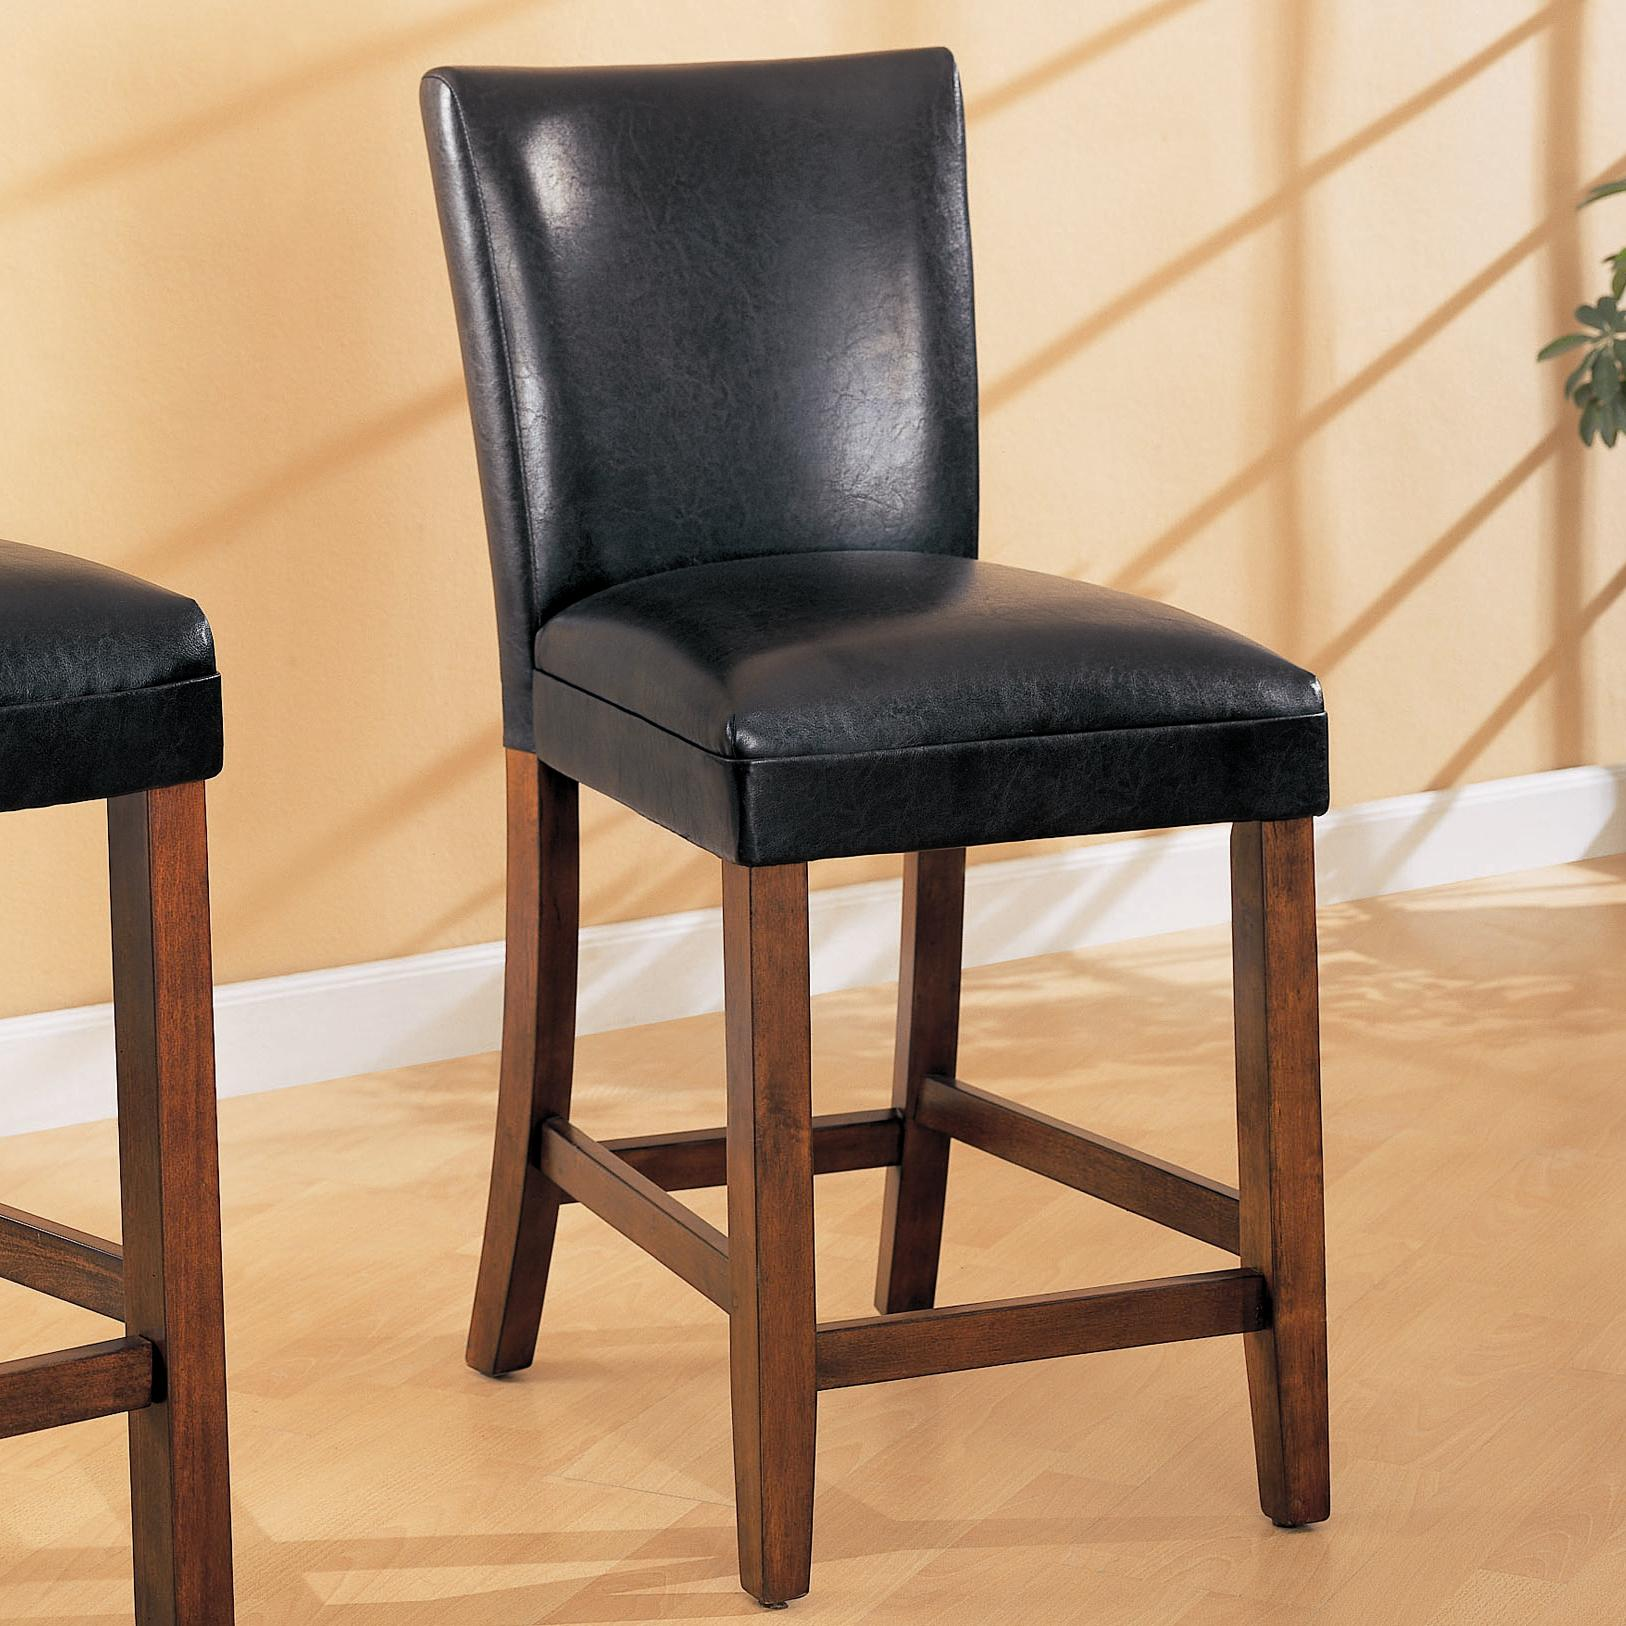 The Chair Outlet Bar And Counter Stools